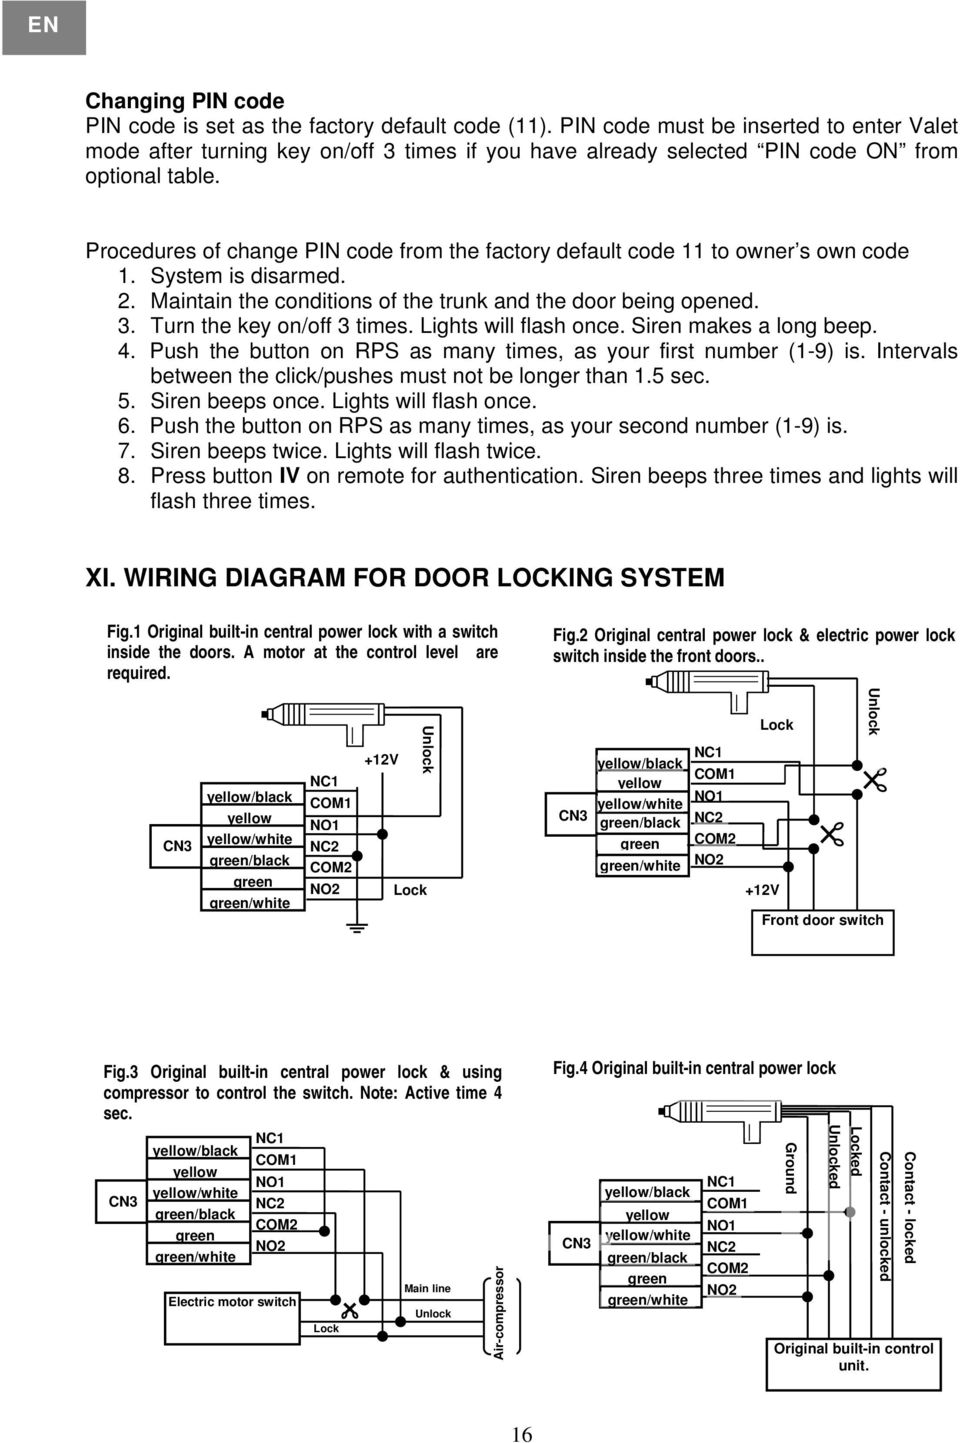 Procedures of change PIN code from the factory default code 11 to owner s own code 1. System is disarmed. 2. Maintain the conditions of the trunk and the door being opened. 3.